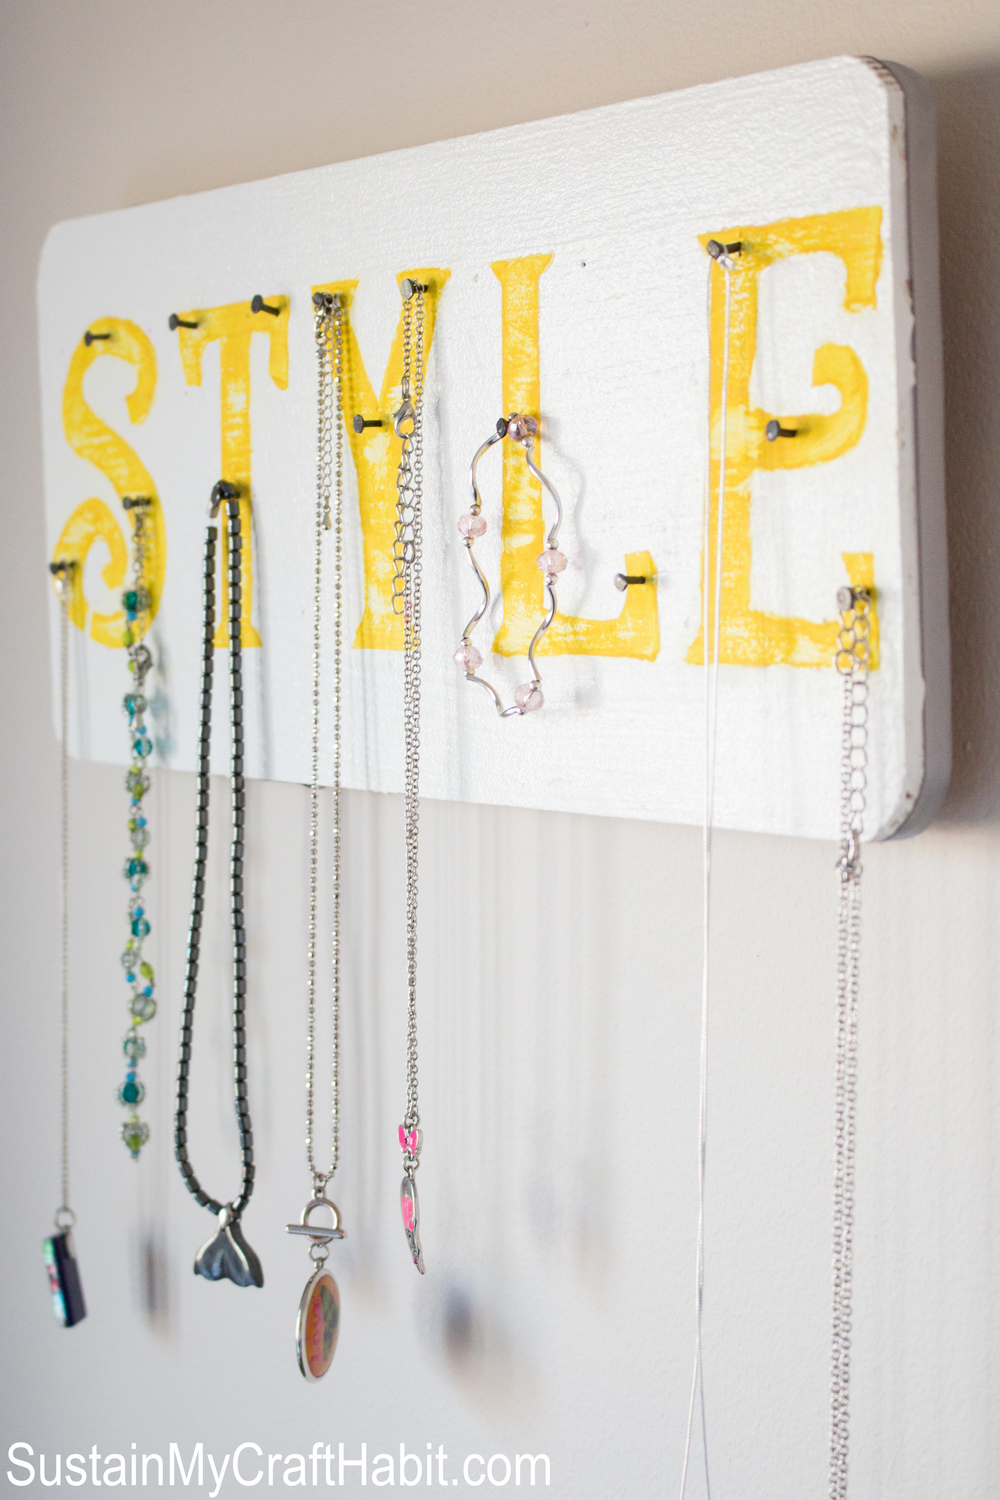 """There's my Necklace!"" Accessory Organizer - SUSTAIN MY CRAFT HABIT"